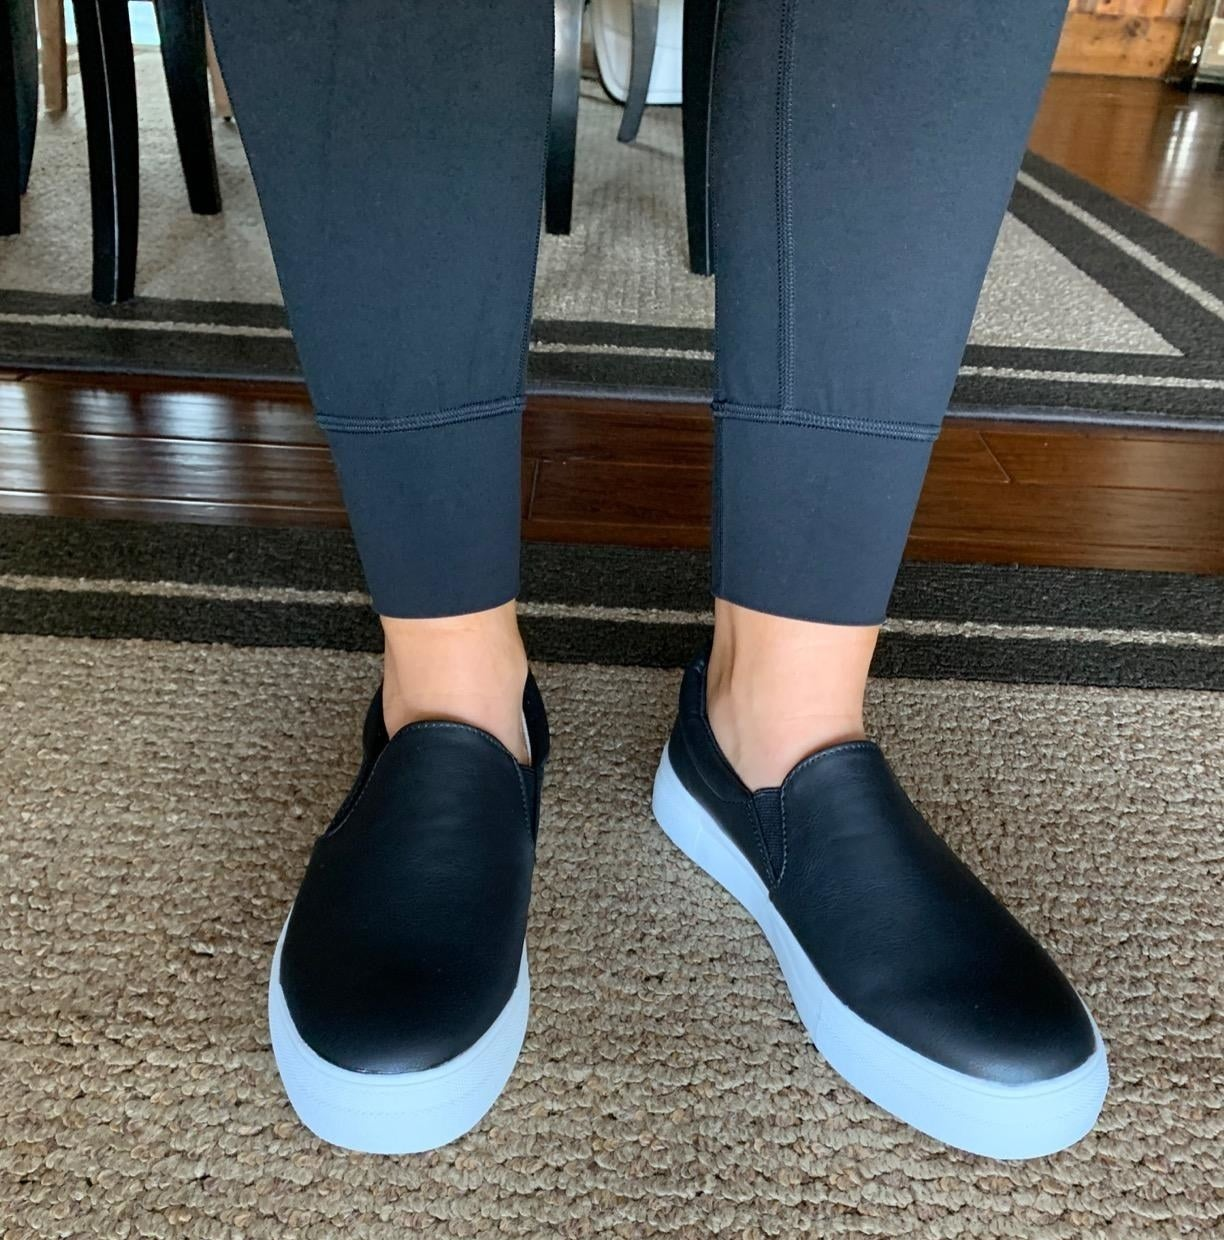 Reviewer wearing the slip-on sneaker in black with a white wide sole